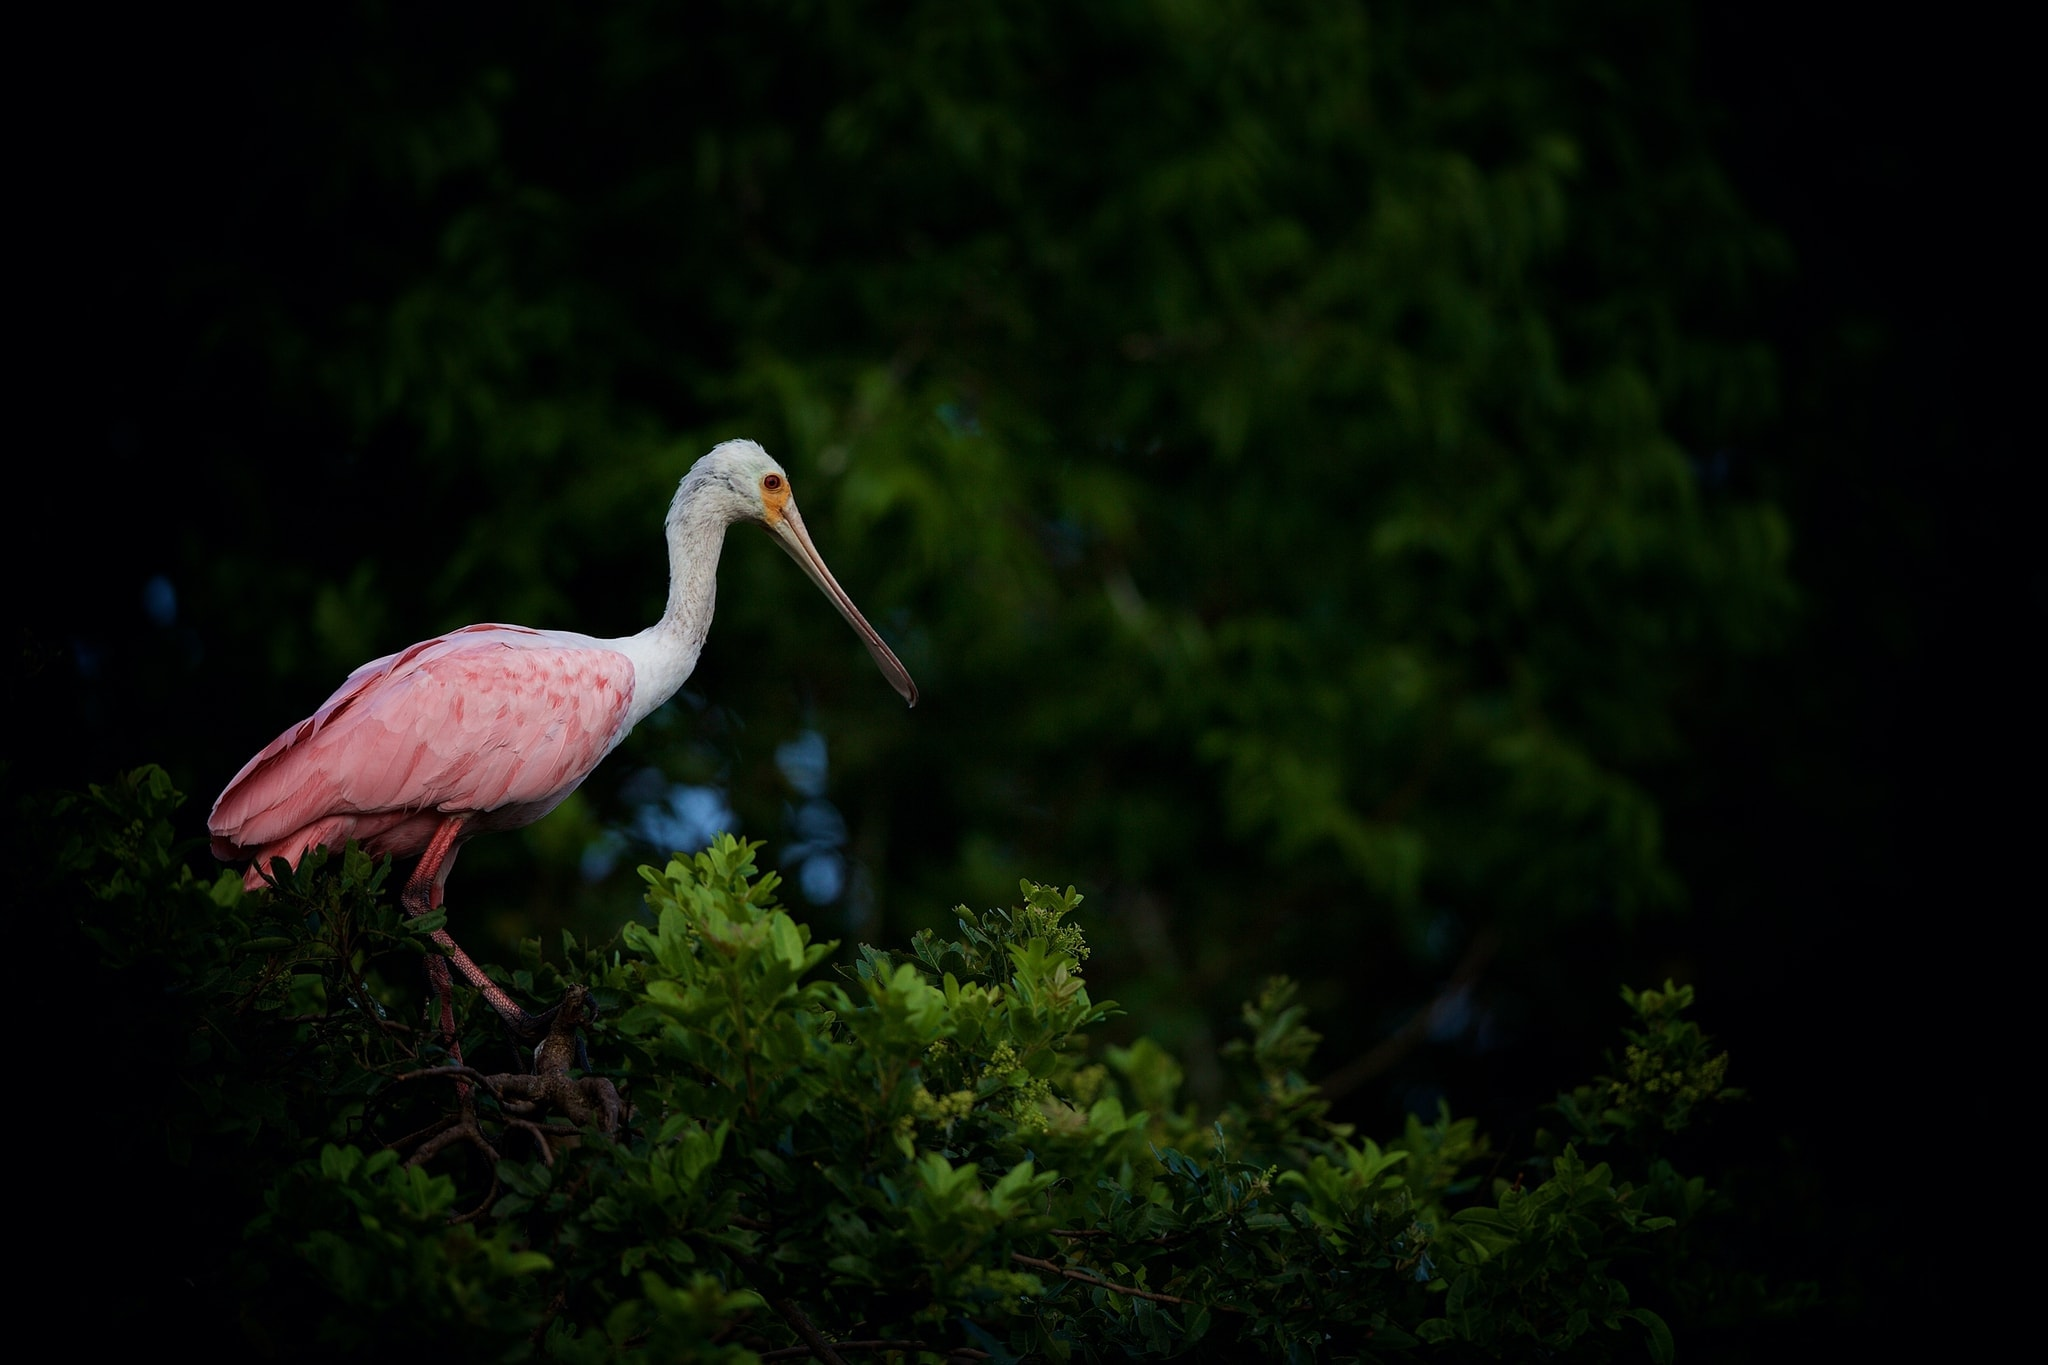 One Of The Roseate Spoonbills At A Rookery Site Image Captured During The Ospreys Of Blue Cypress Lake Photography Holiday